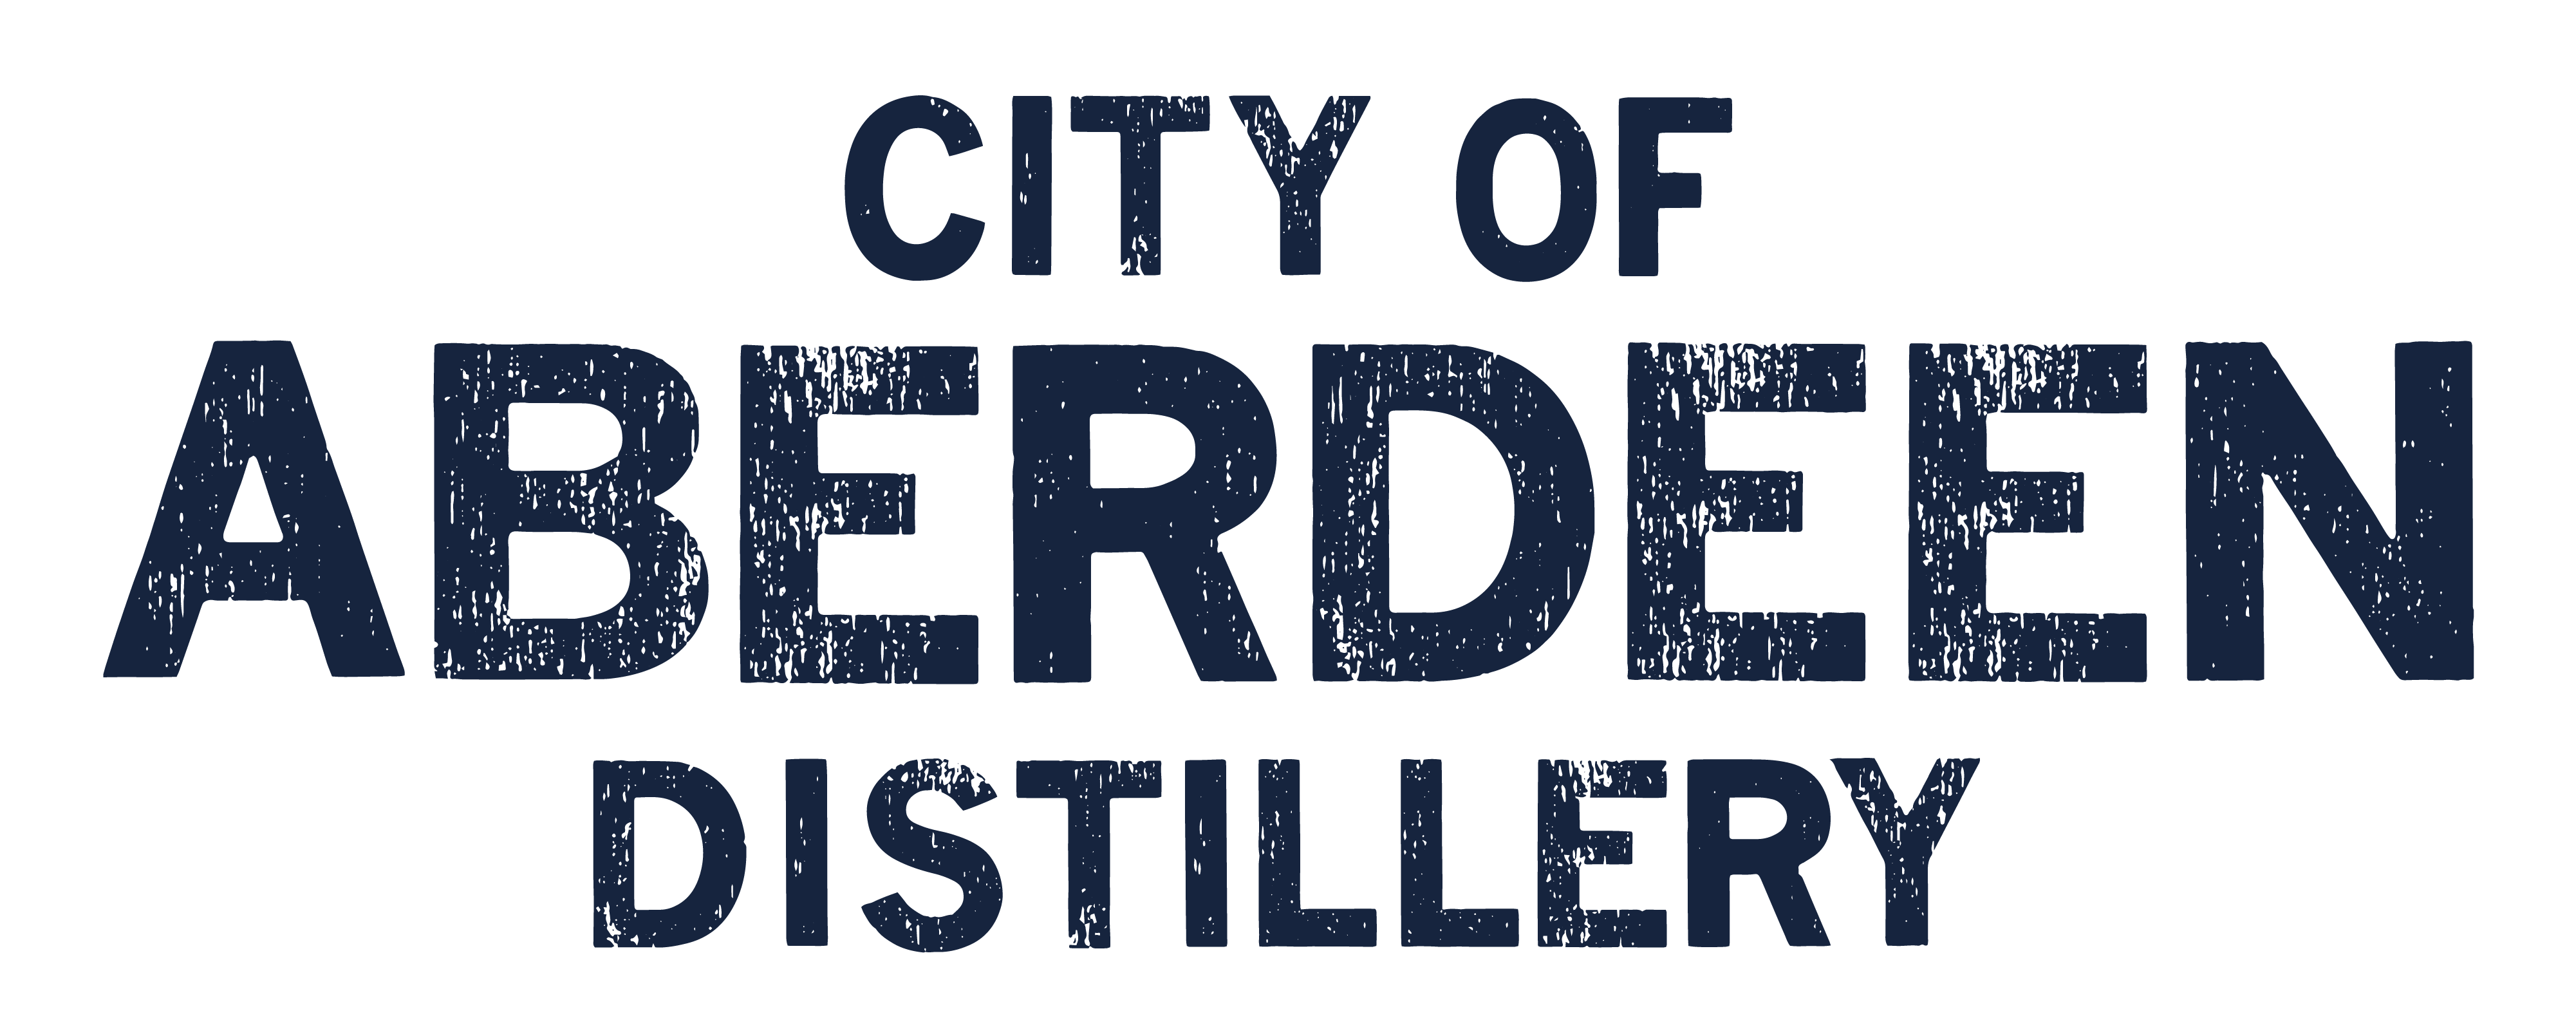 City of Aberdeen Distillery & Gin School